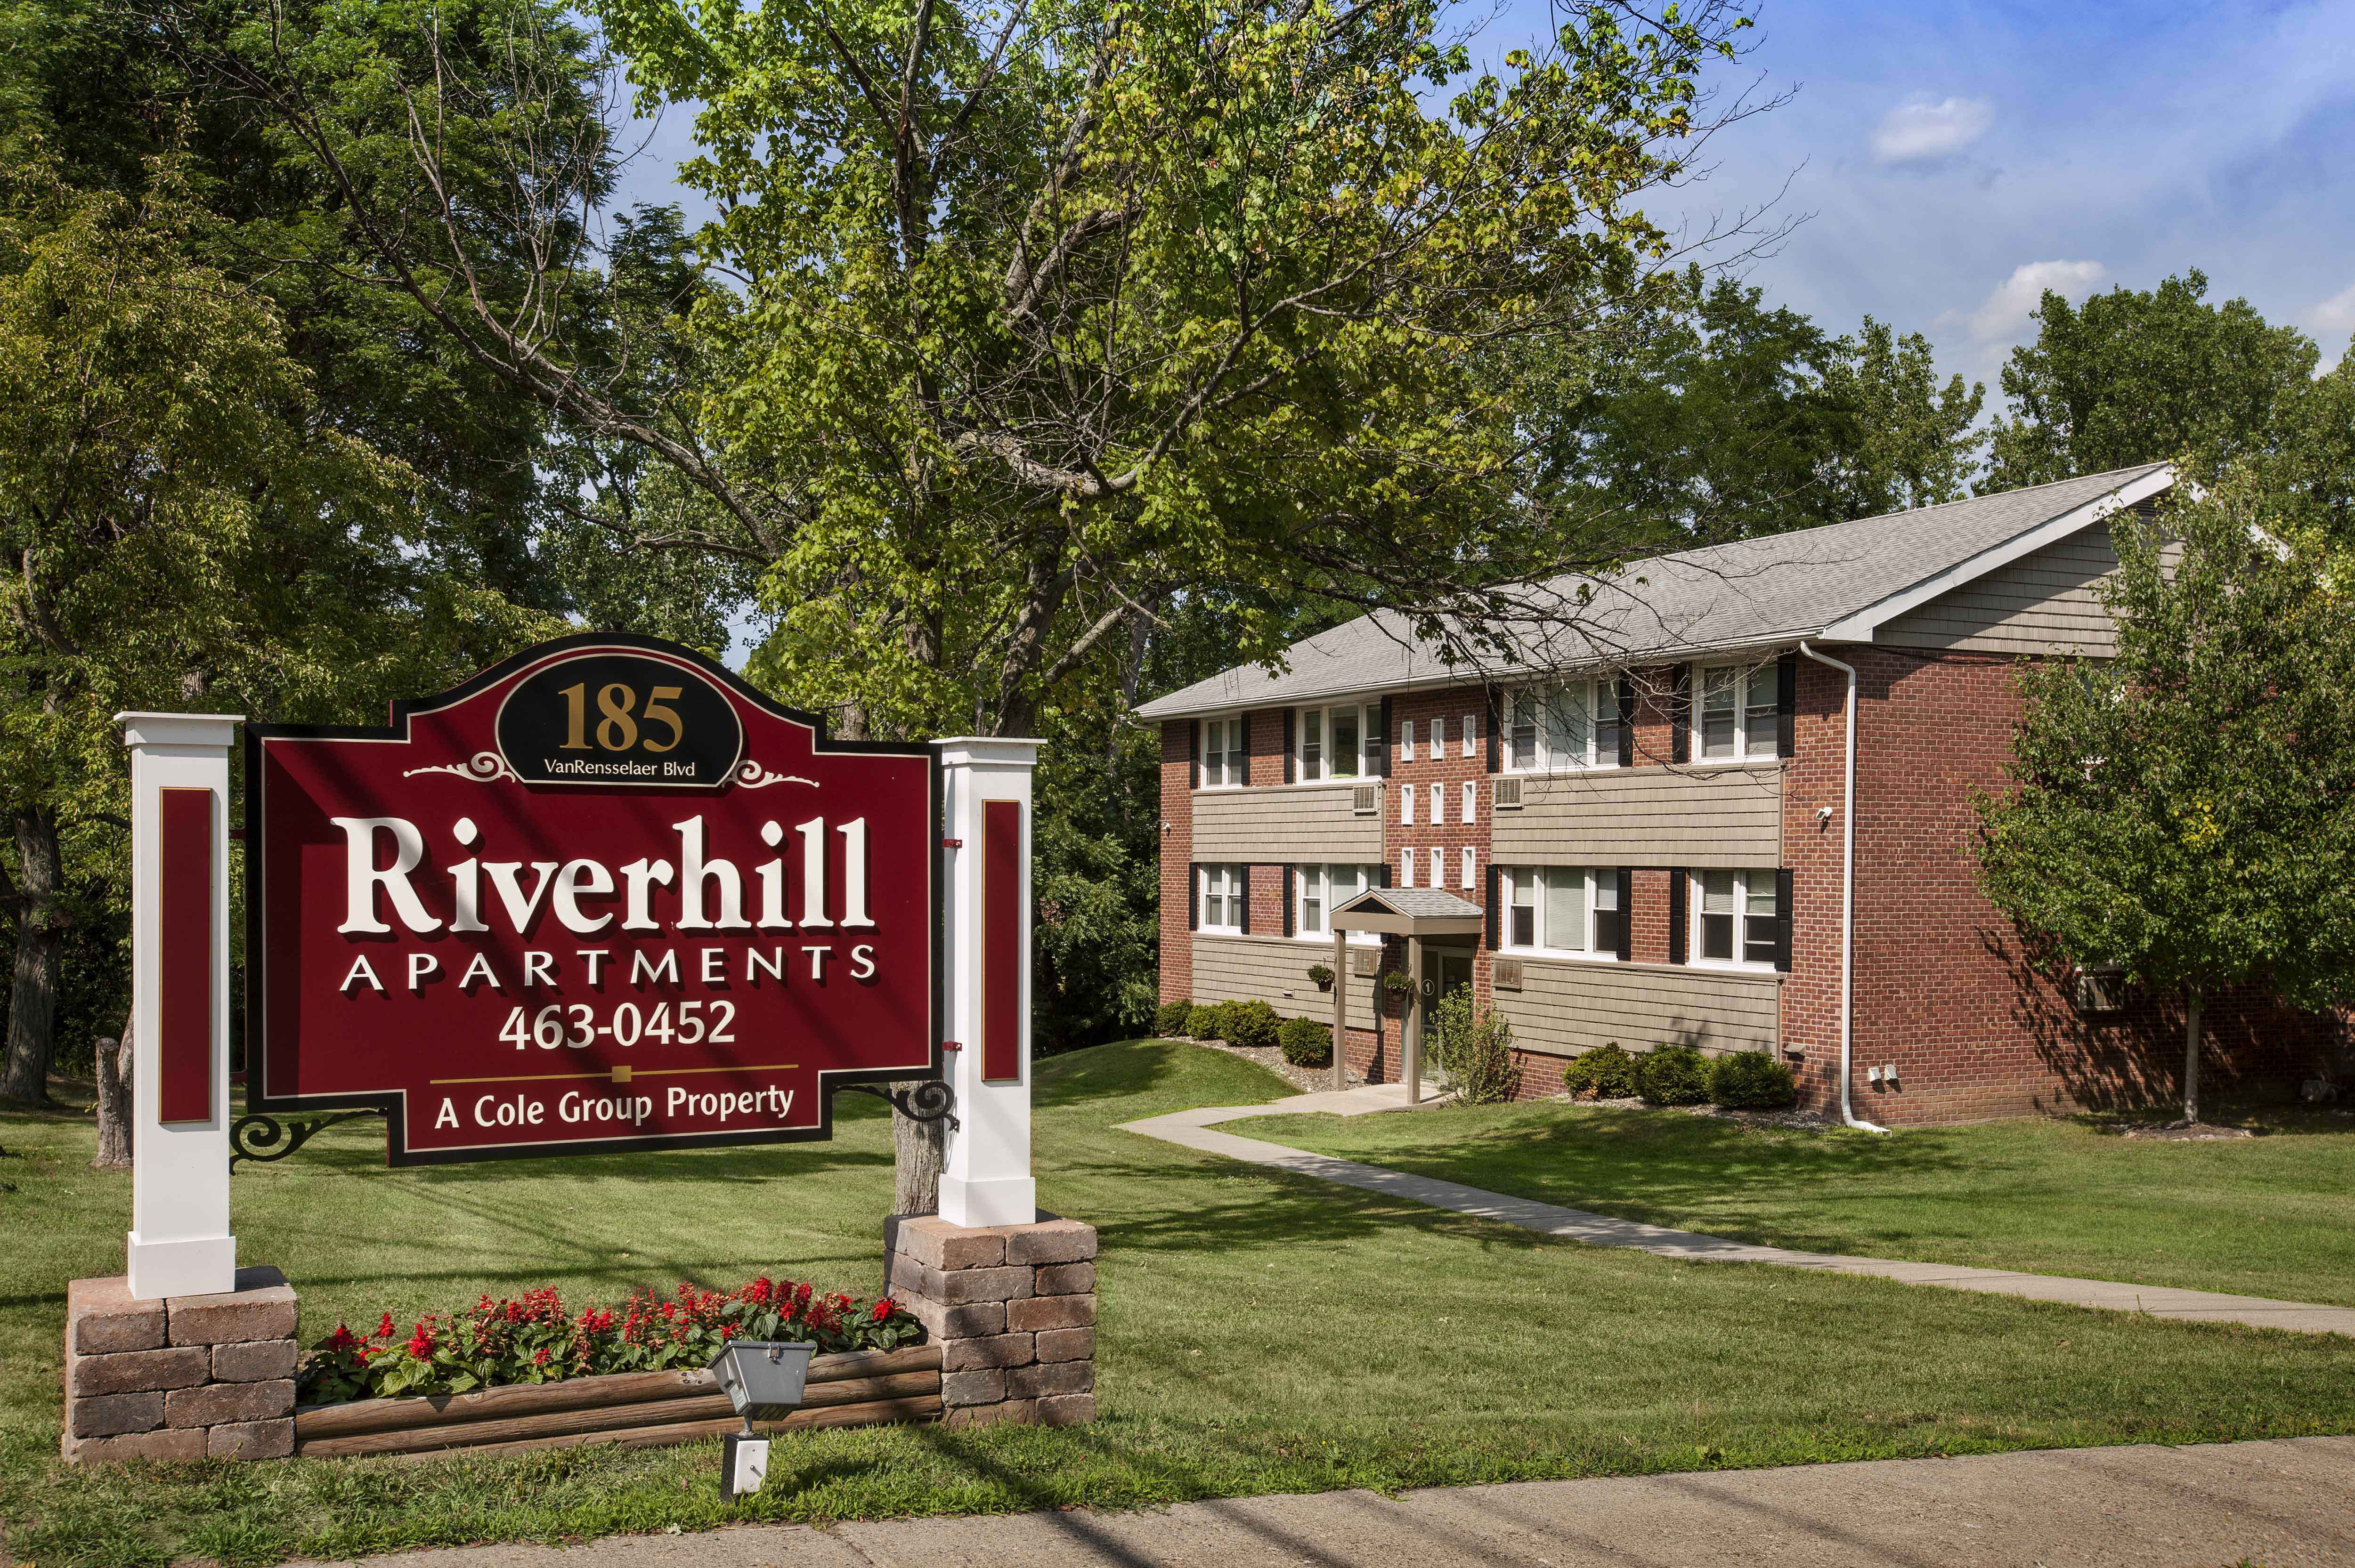 Riverhill Apartments for rent